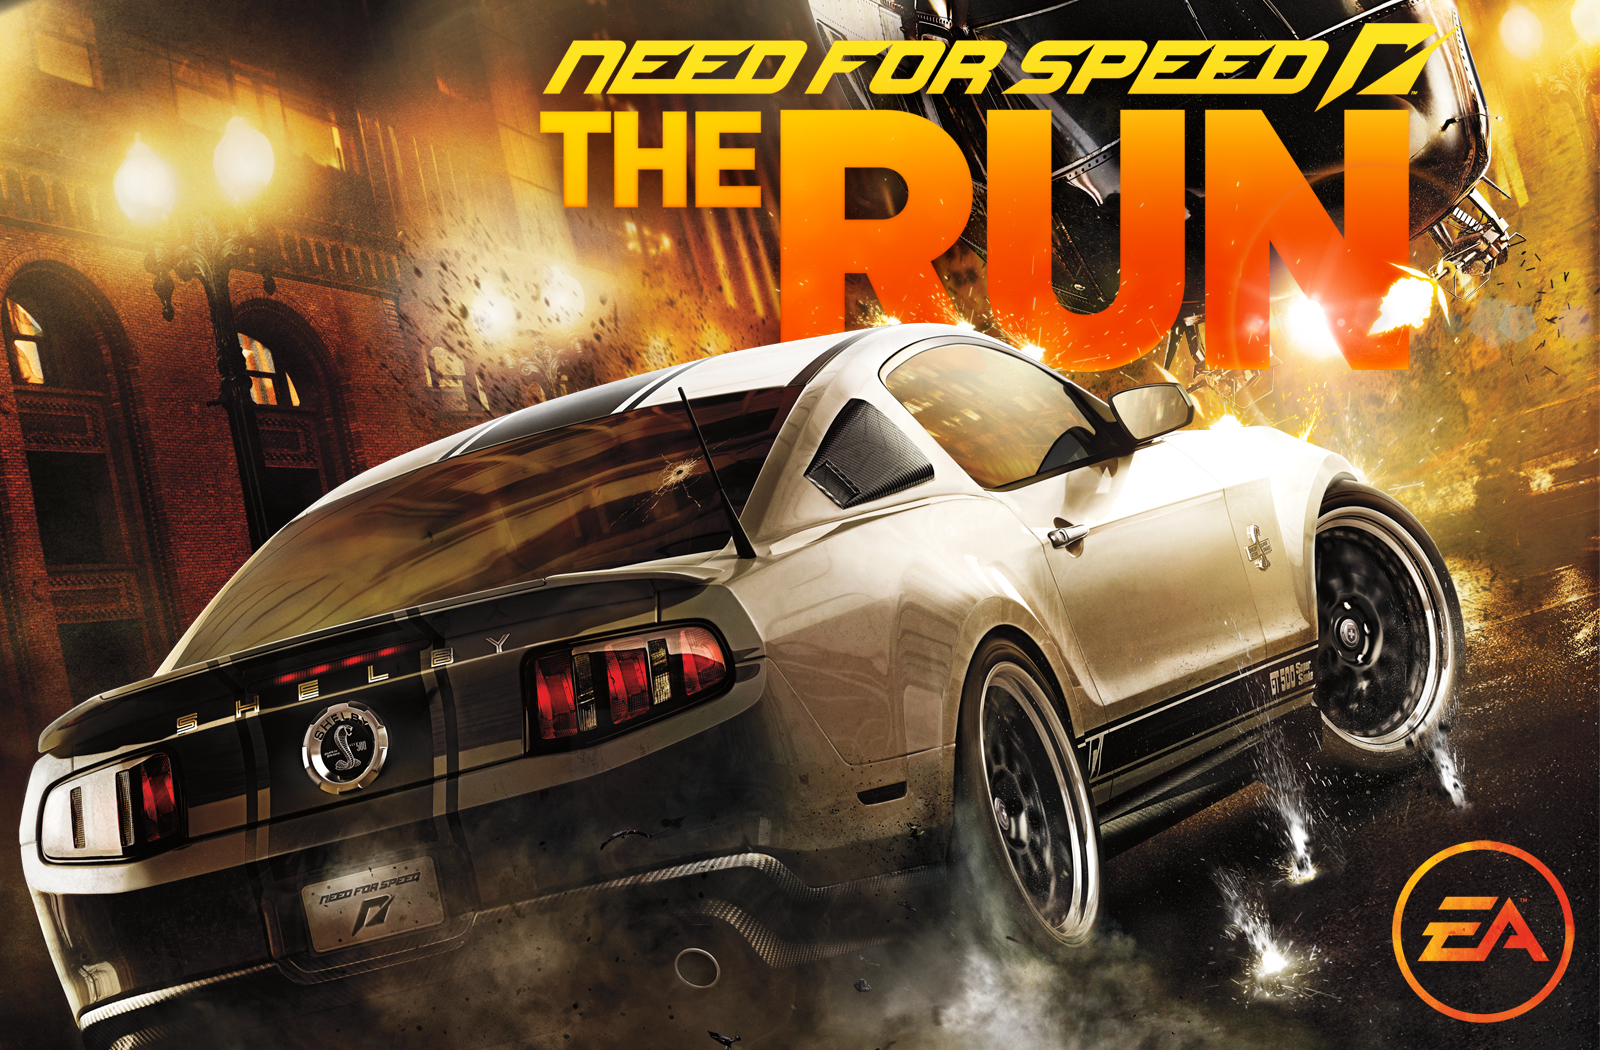 http://4.bp.blogspot.com/-NrVPl3roK6M/TsU8n8zh8AI/AAAAAAAAAWk/v86ETIKFYoI/s1600/Need-for-Speed-The-Run-wallpaper.jpg